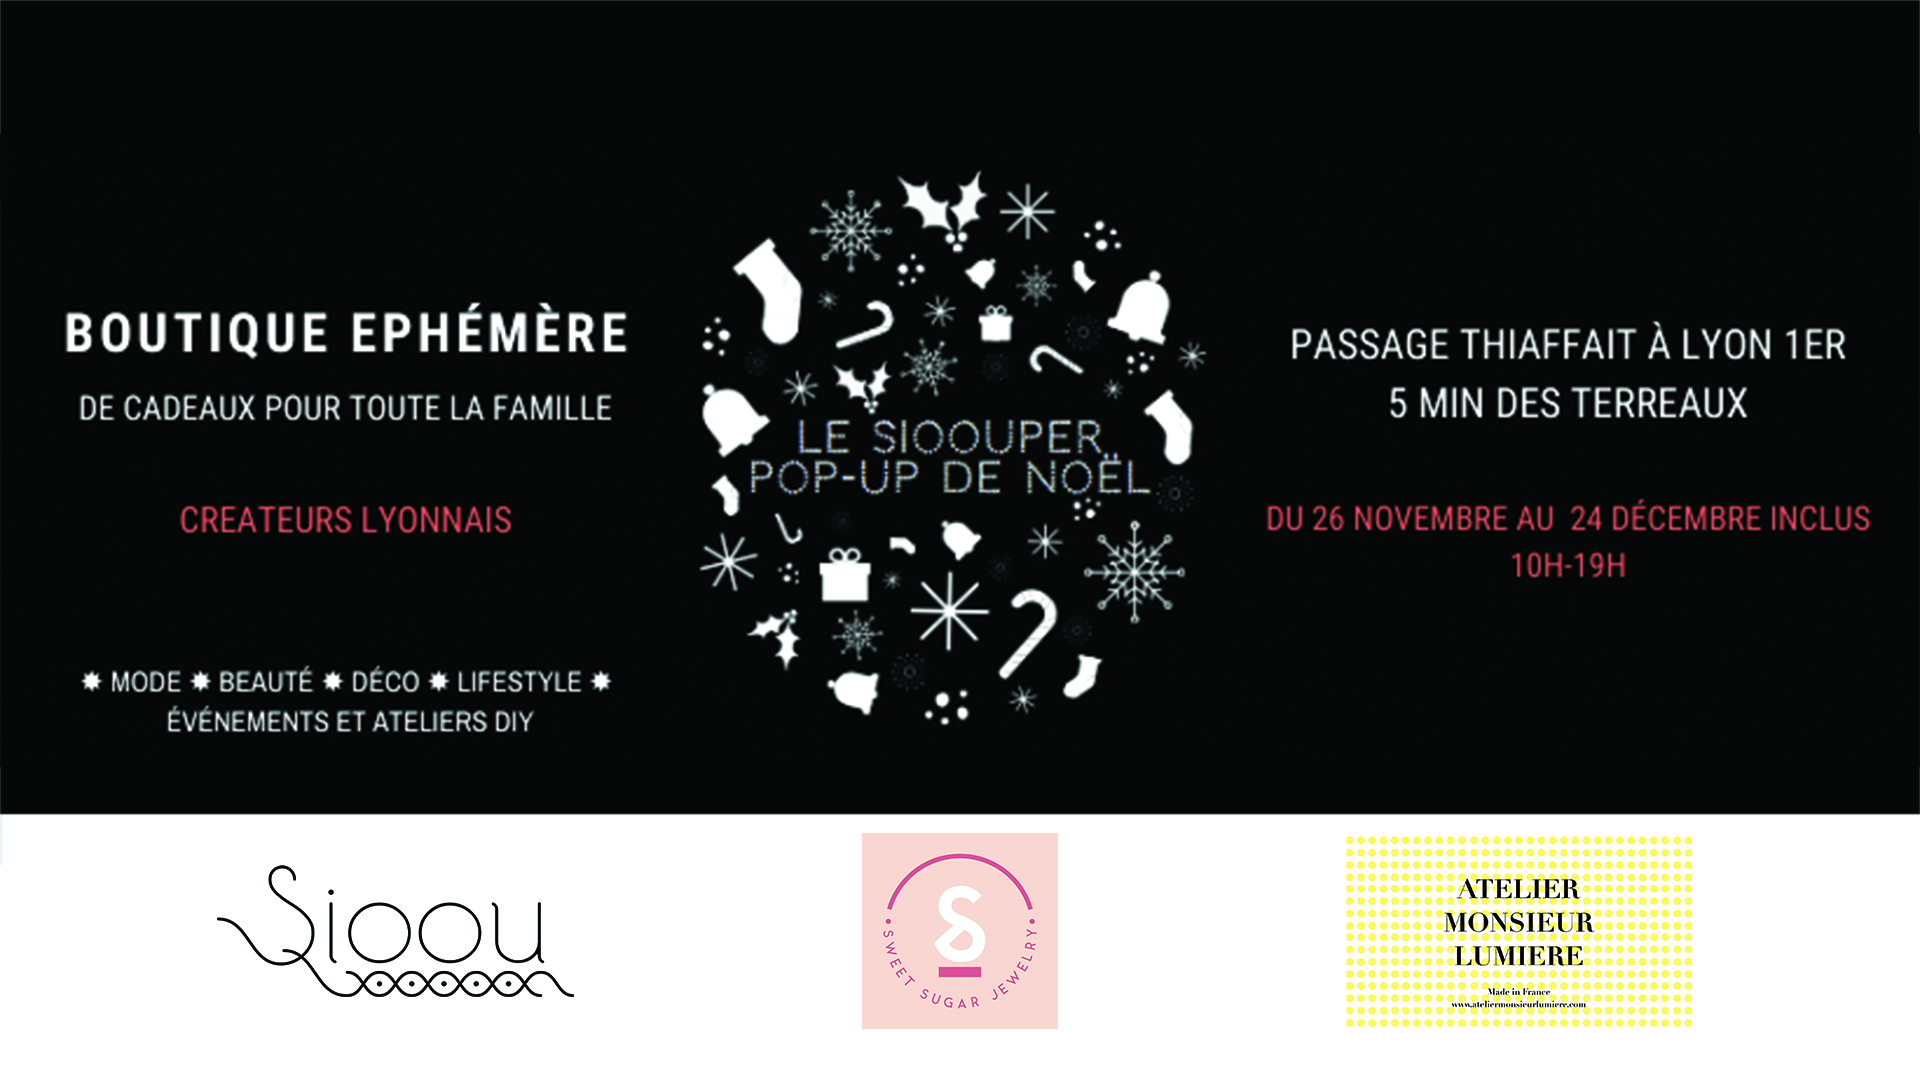 Sioouper pop-up store de Noel